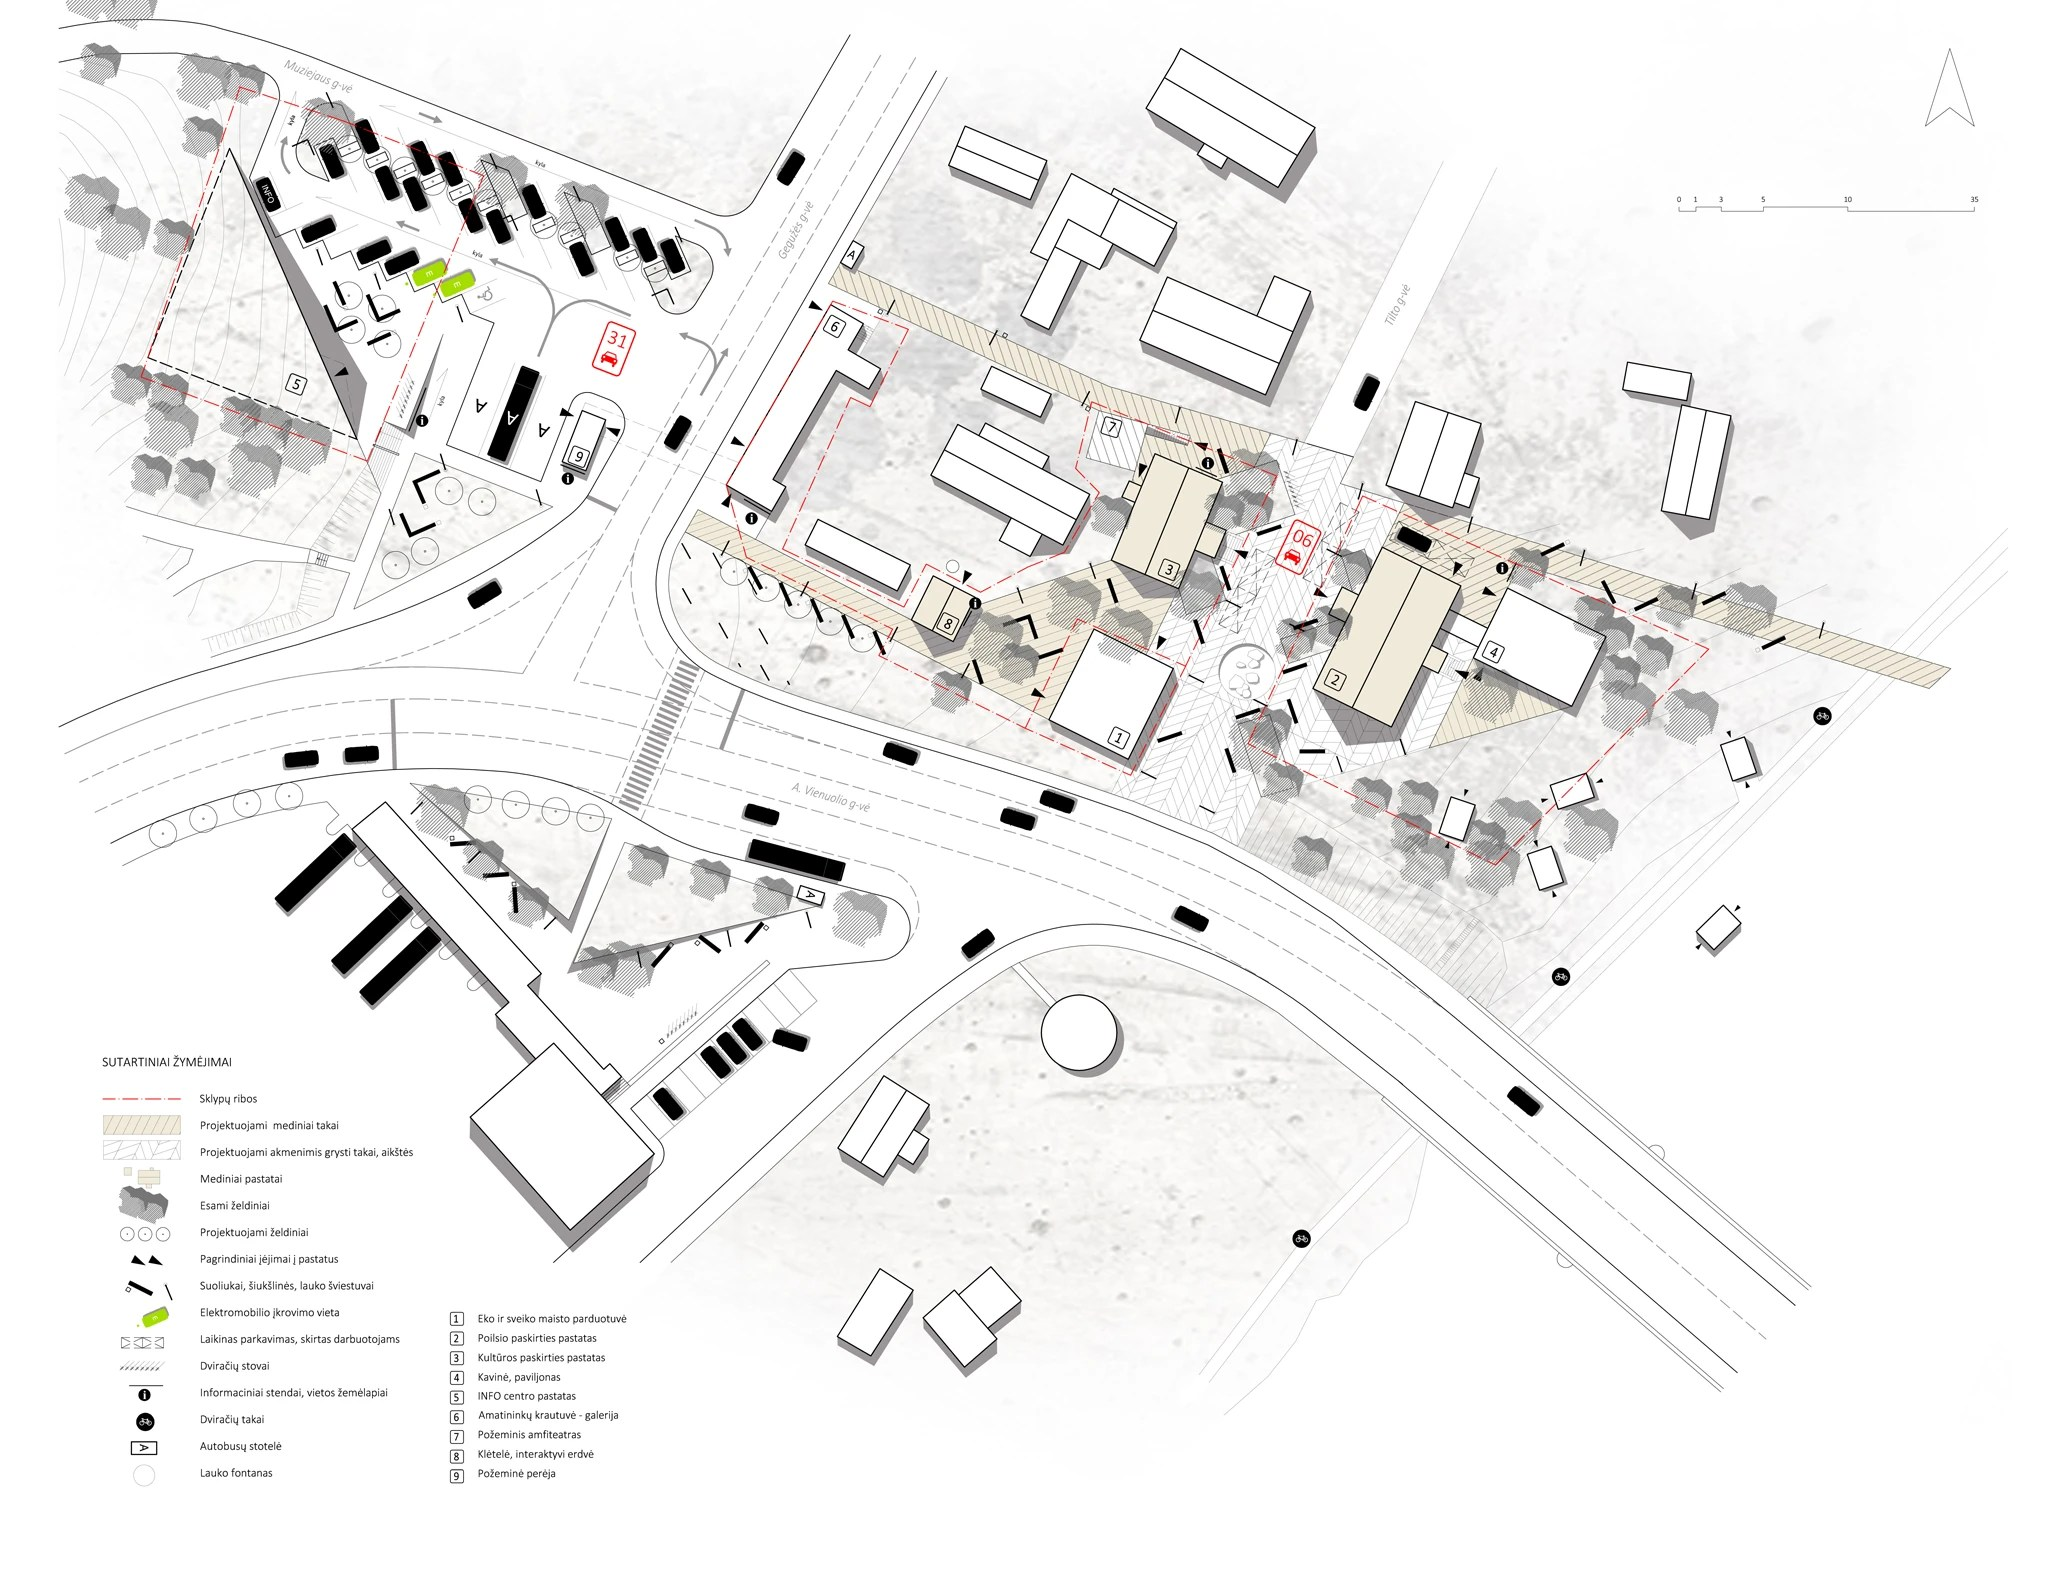 Ideas for Urban Planning · A collection curated by Divisare